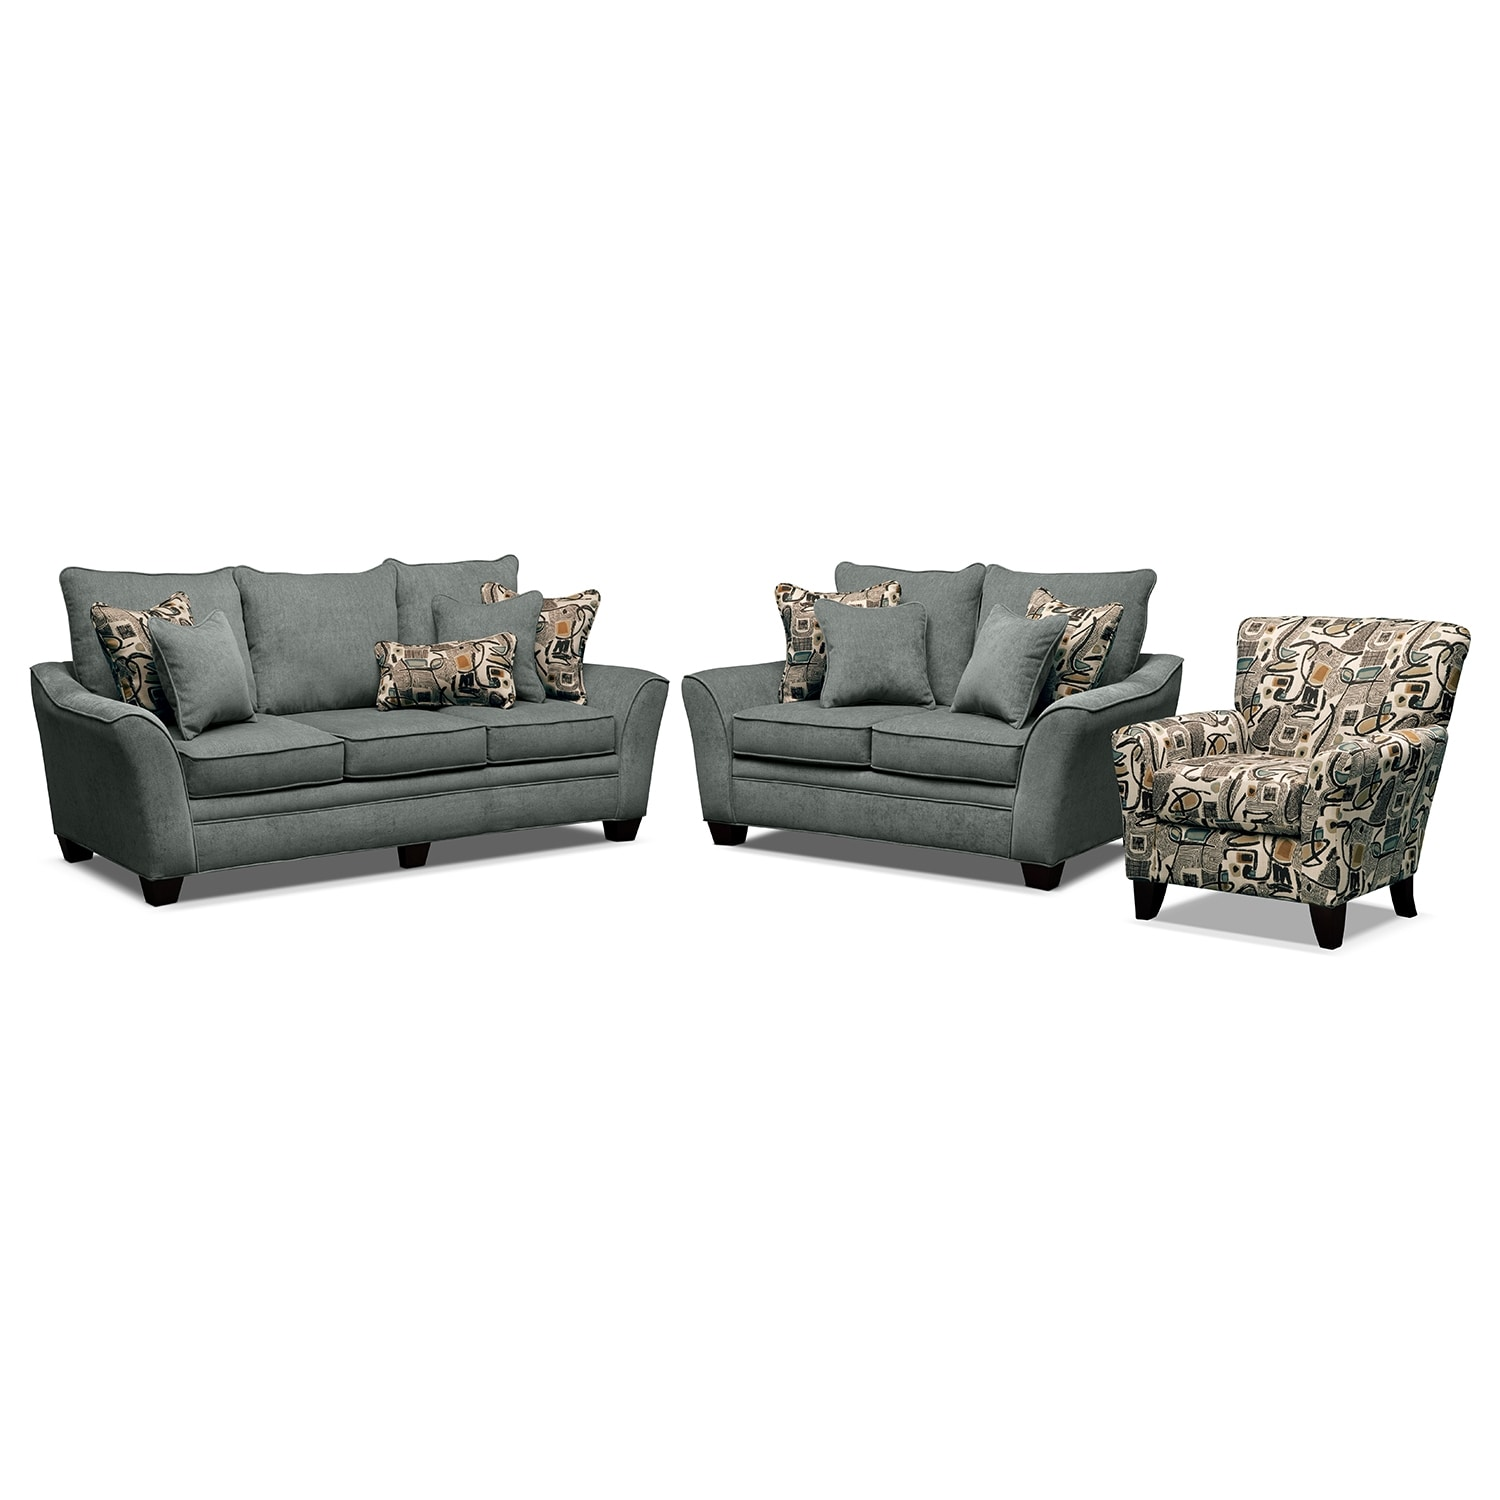 Living Room Furniture - Mandalay II 3 Pc. Living Room w/Accent Chair